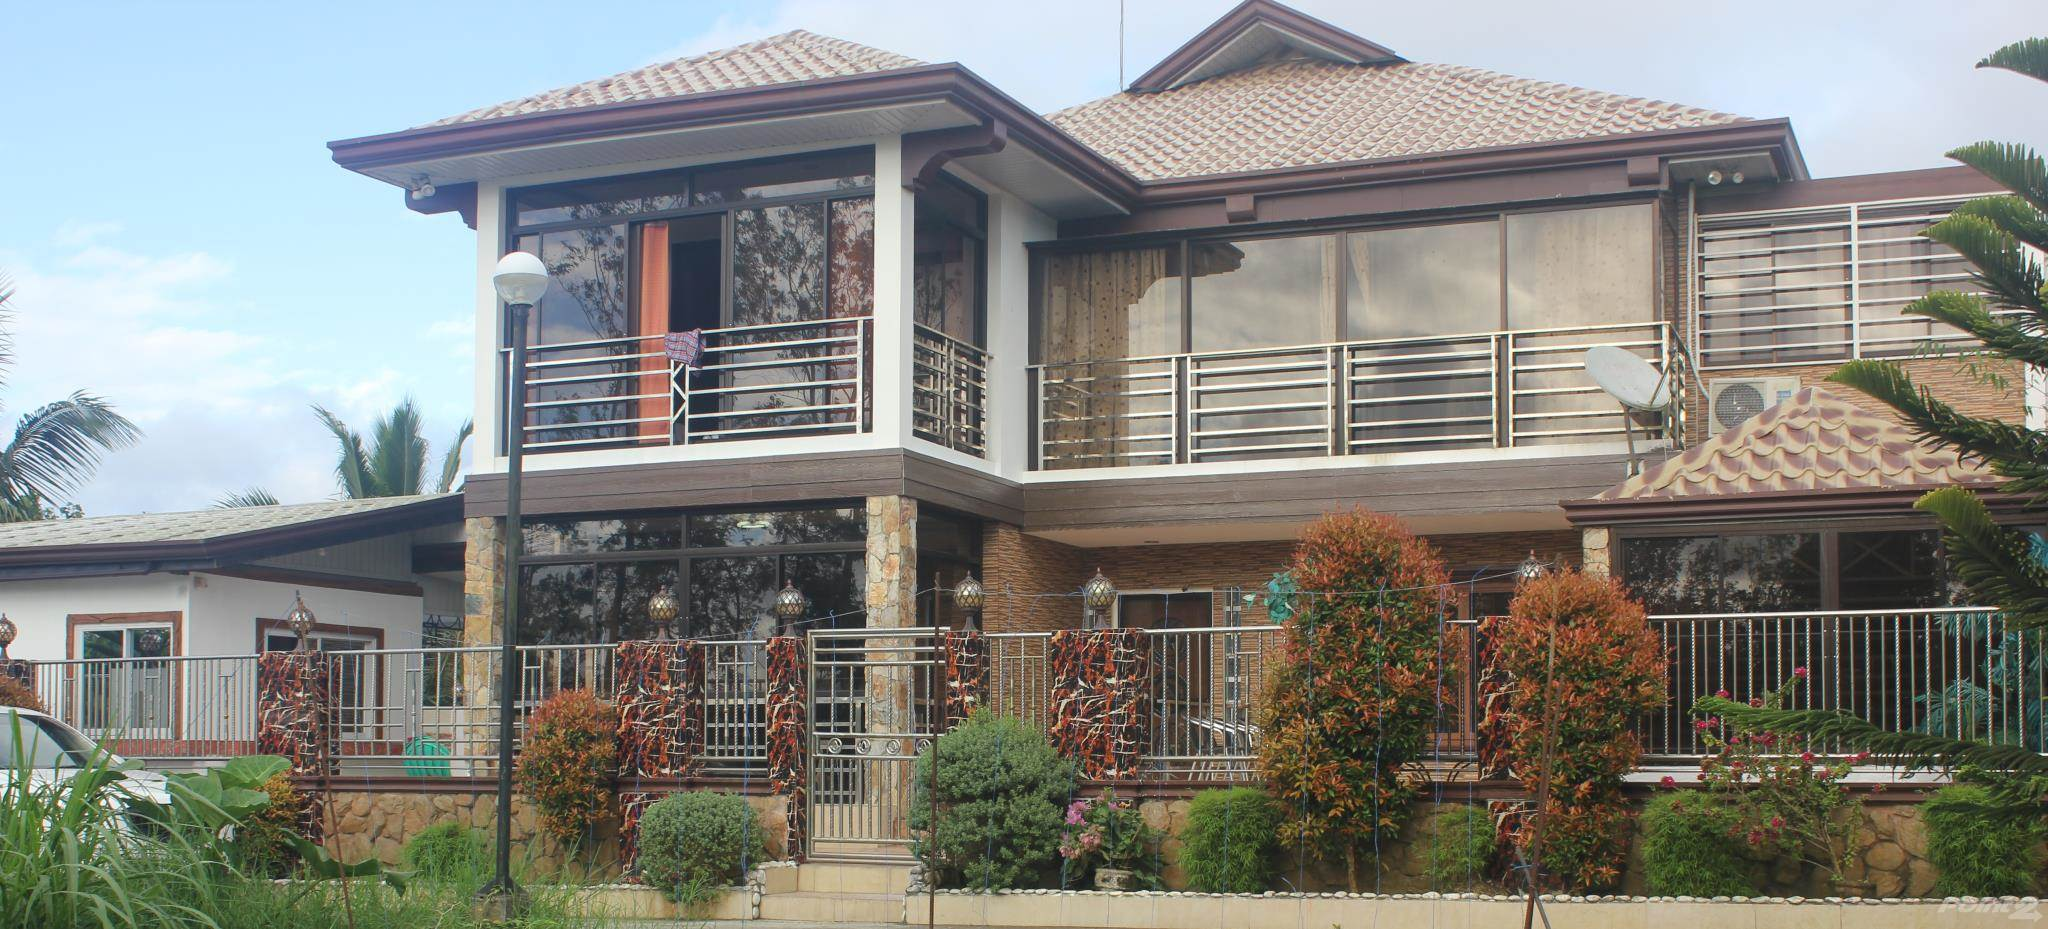 Residential For Sale in Isabelle Heights, Kaybagal Central, Tagaytay City, Philippines, Tagaytay, Metro Manila ,4120  , Philippines